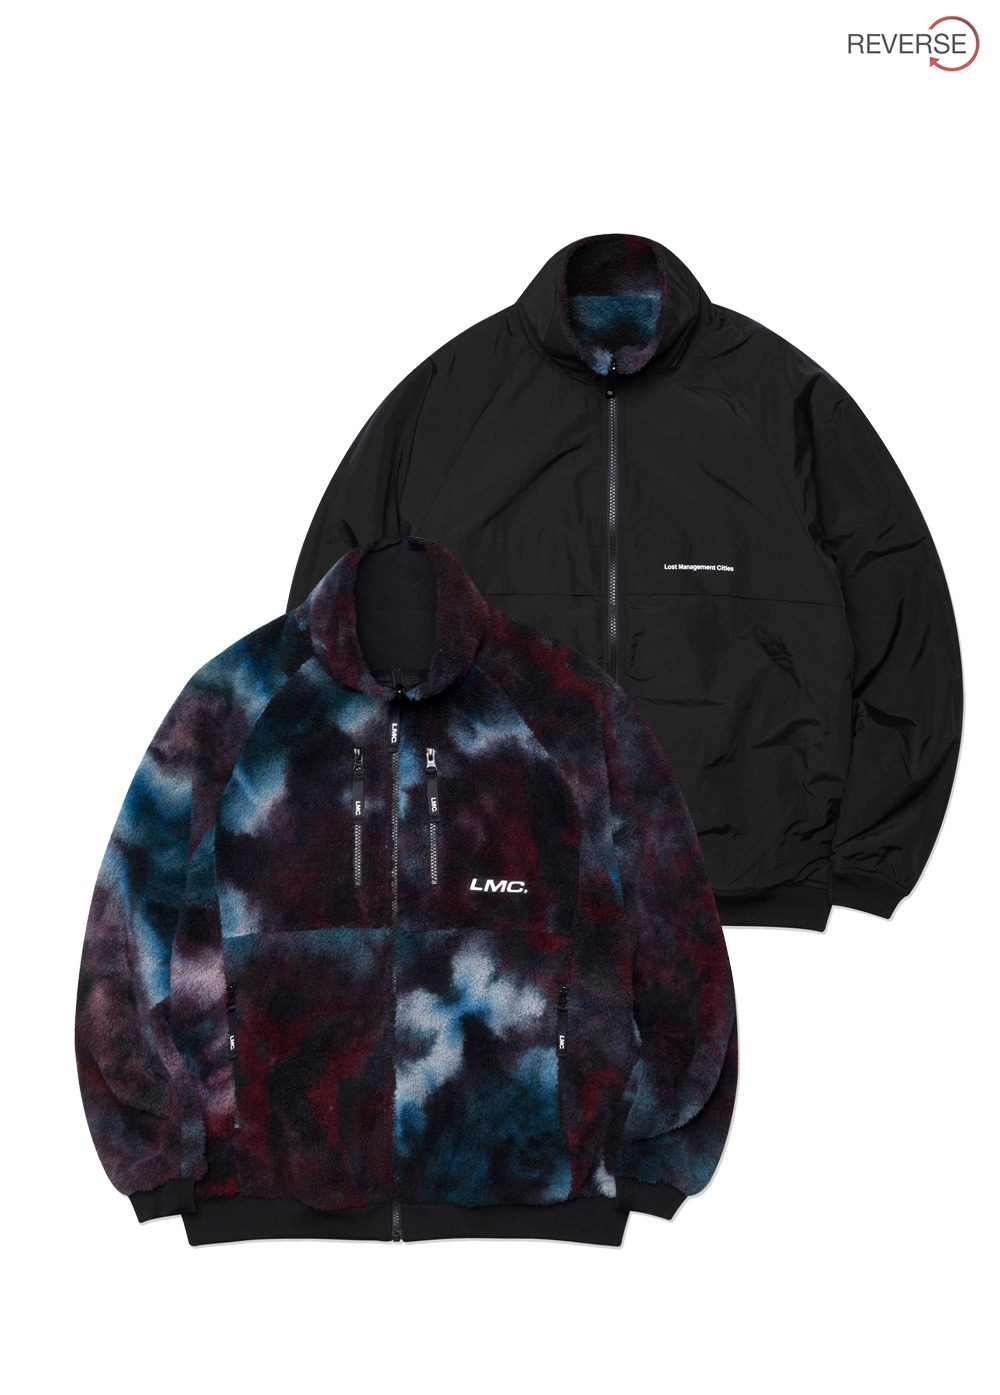 LMC FLEECE REVERSIBLE MP JACKET multi/black